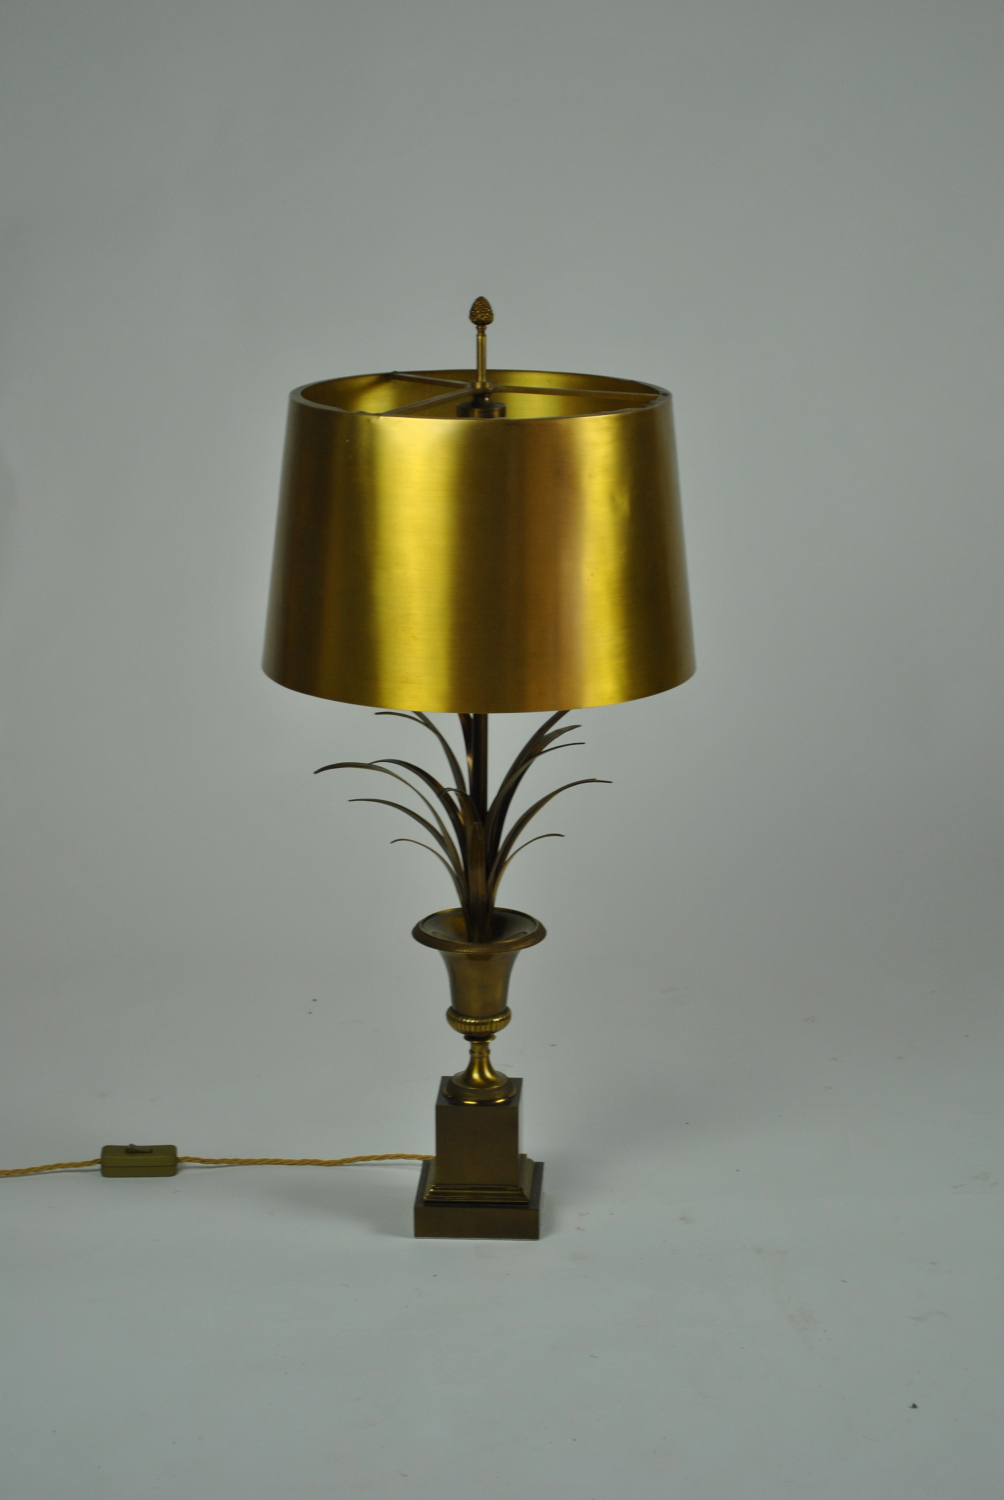 Maison Charles Table Lamp.